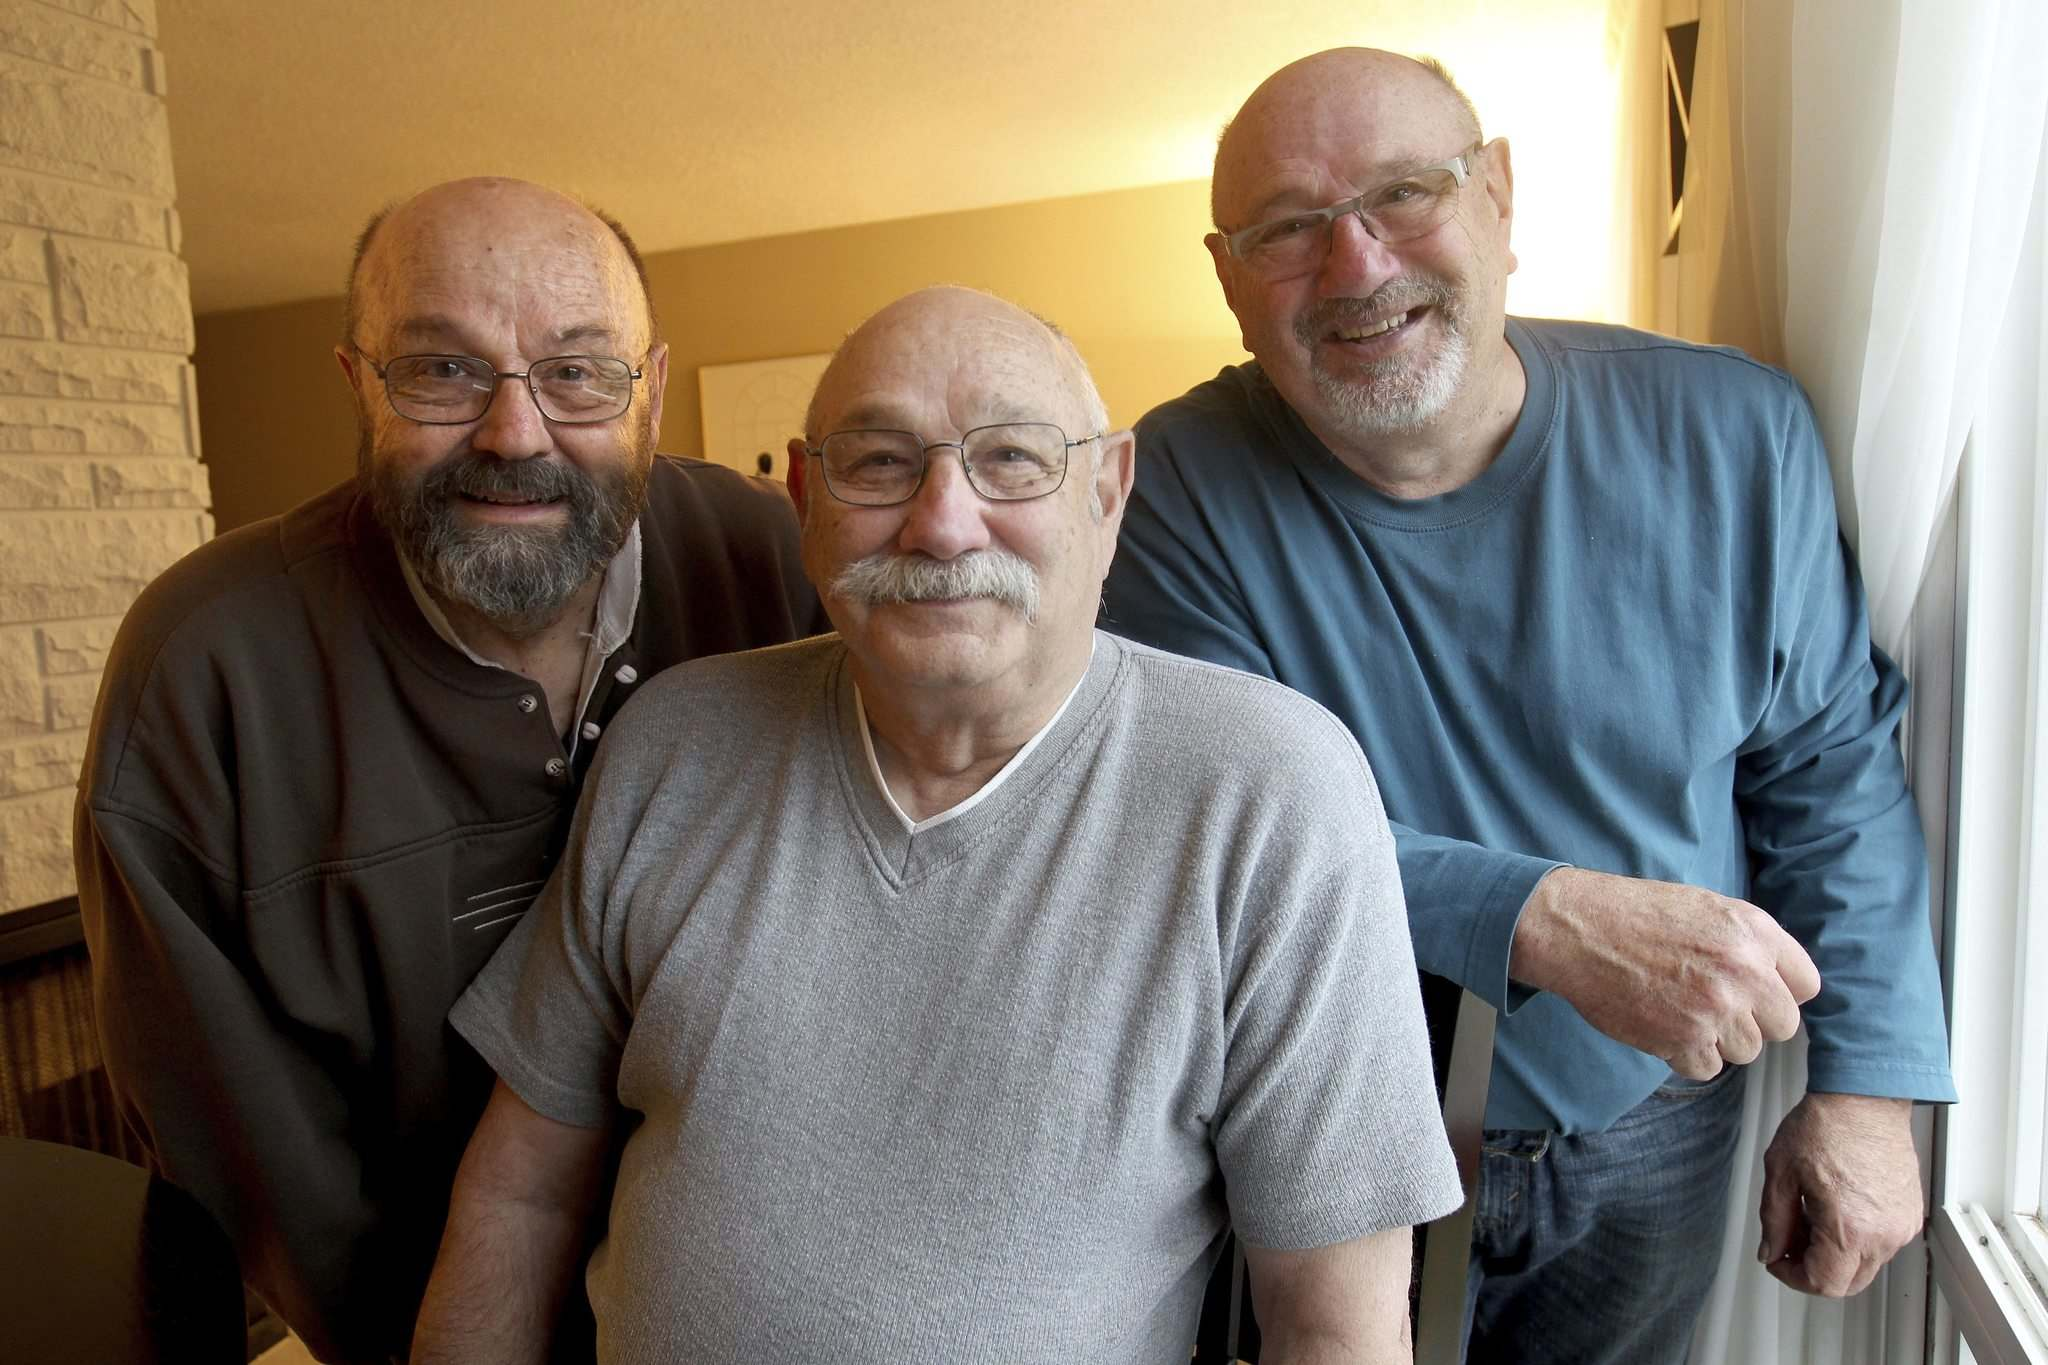 JOE BRYKSA / WINNIPEG FREE PRESS</p><p>The Steiner Brothers — Ron Steiner (from left), Rob and Roy — are now in their 70s. They had a long and successful career as entertainers and rubbed shoulders with some of the world's biggest stars.</p>